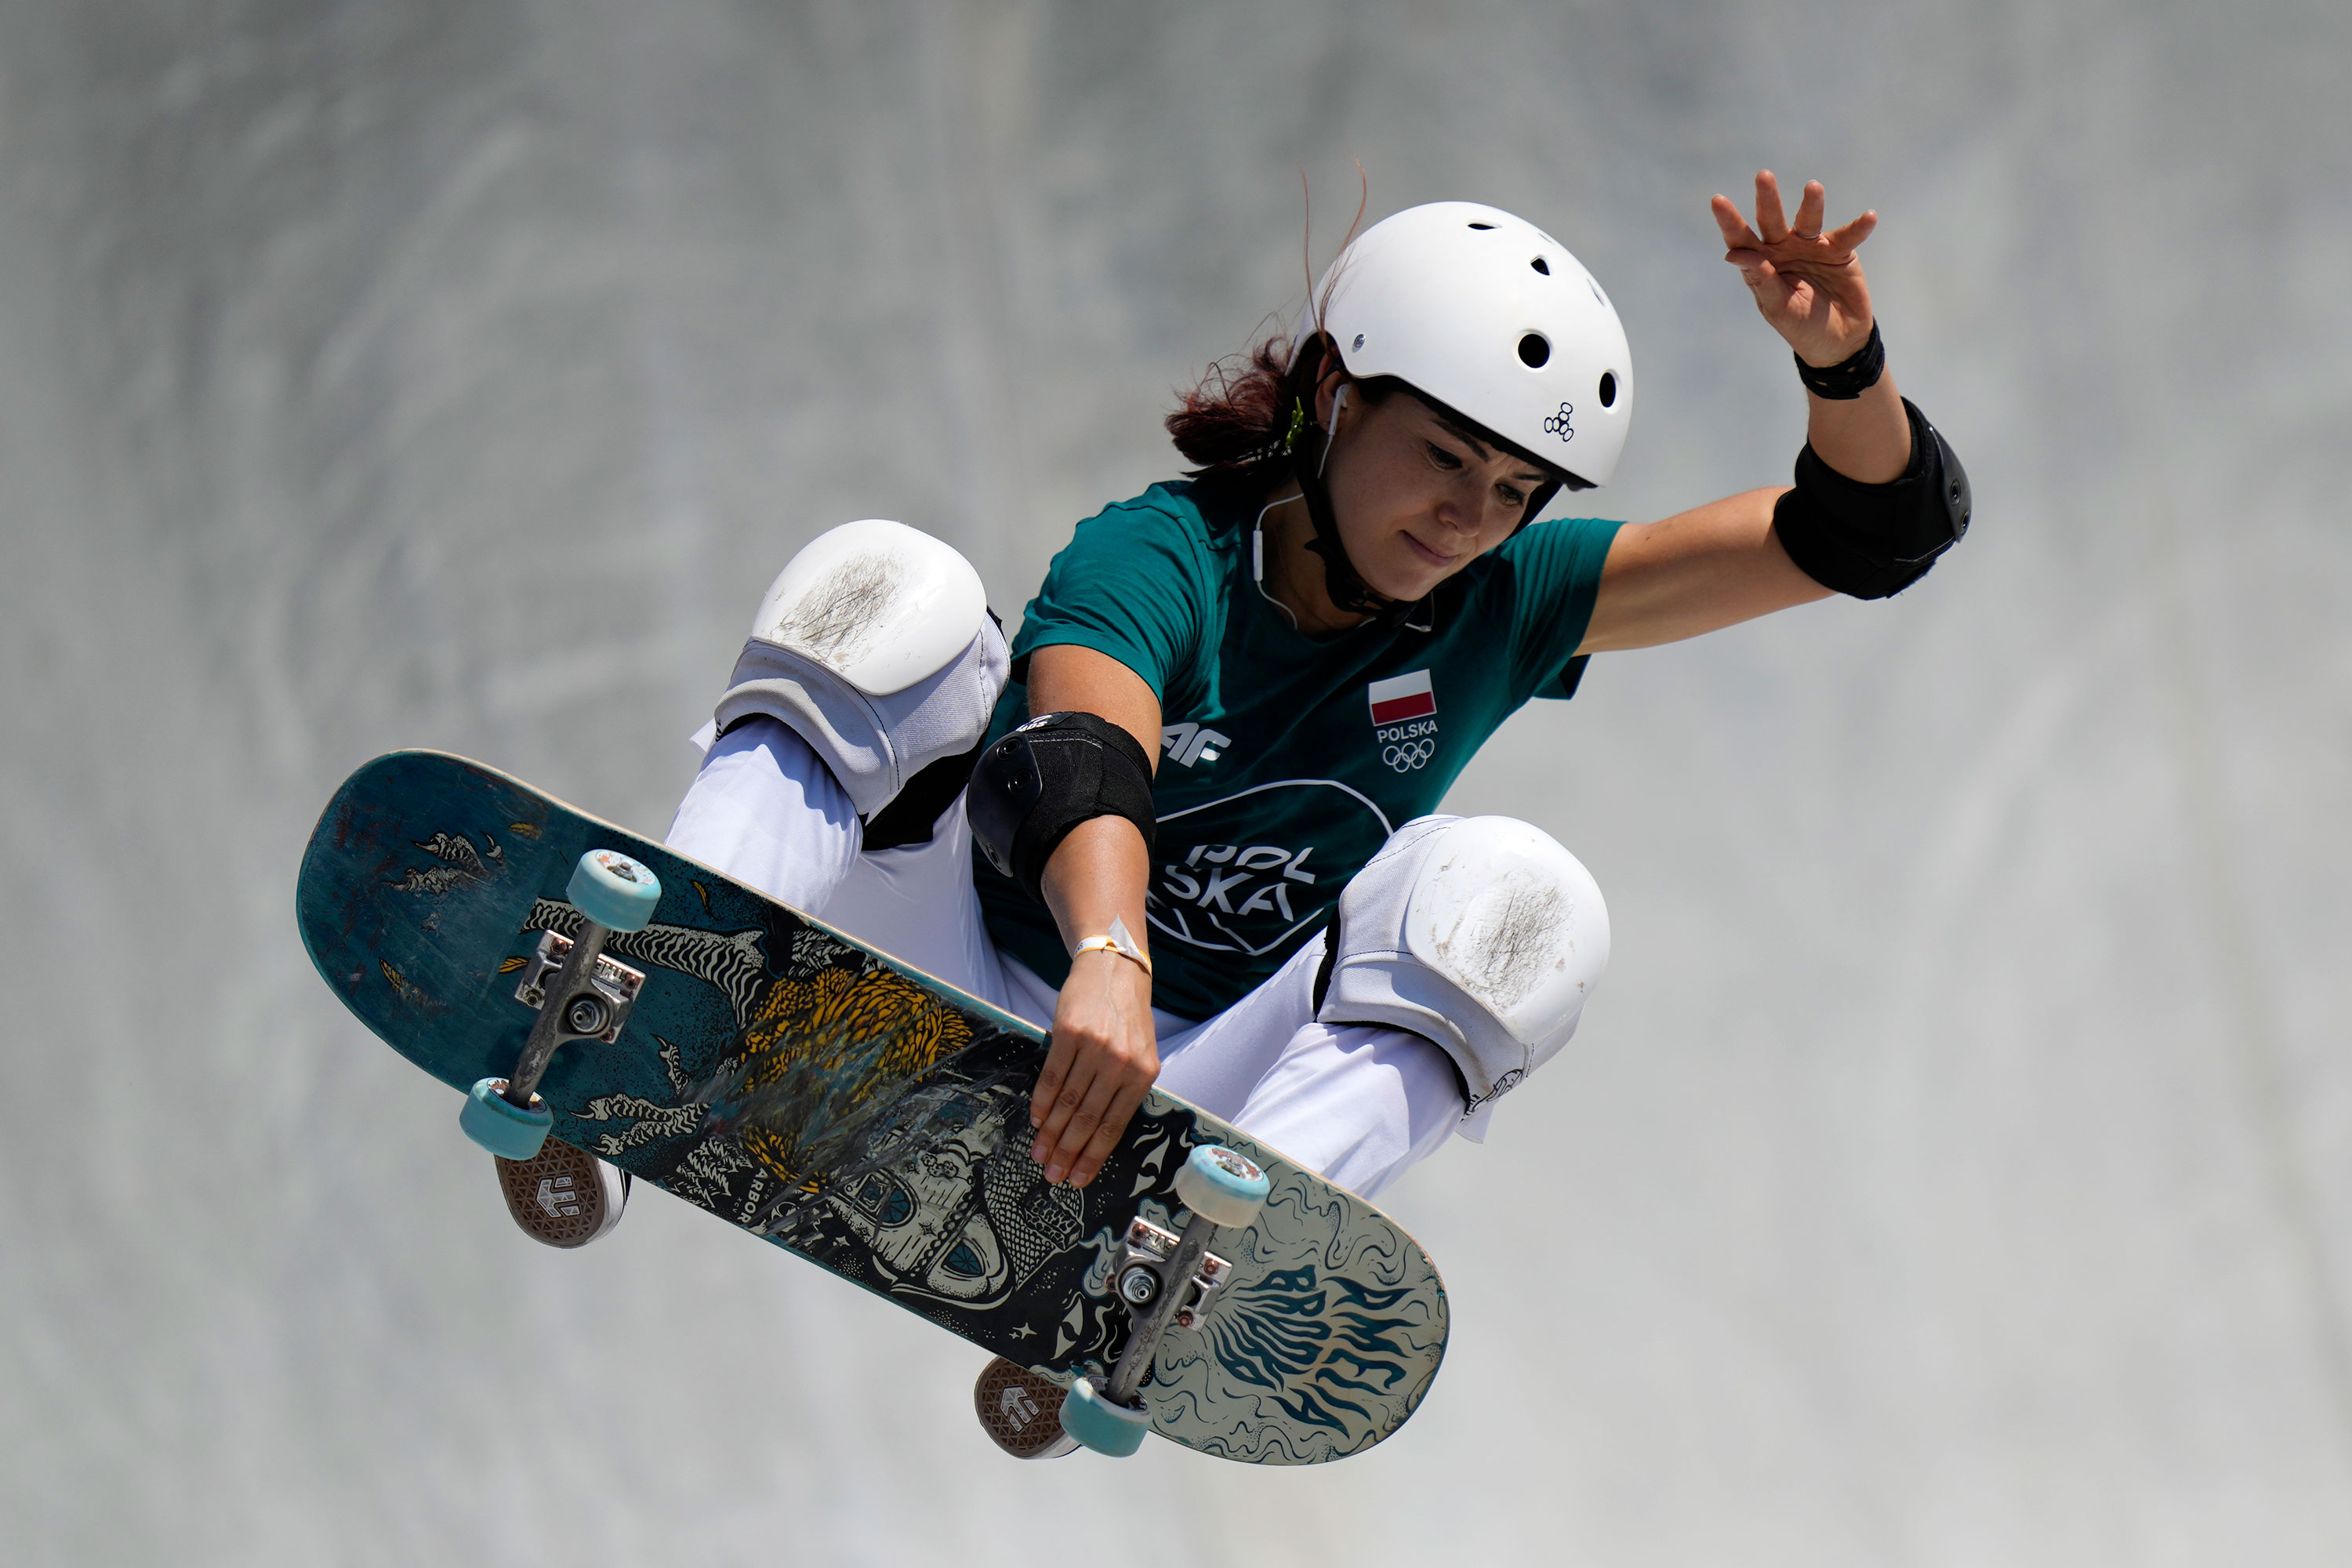 Poland's Amelia Brodka competes in the park skateboarding preliminaries on Wednesday.